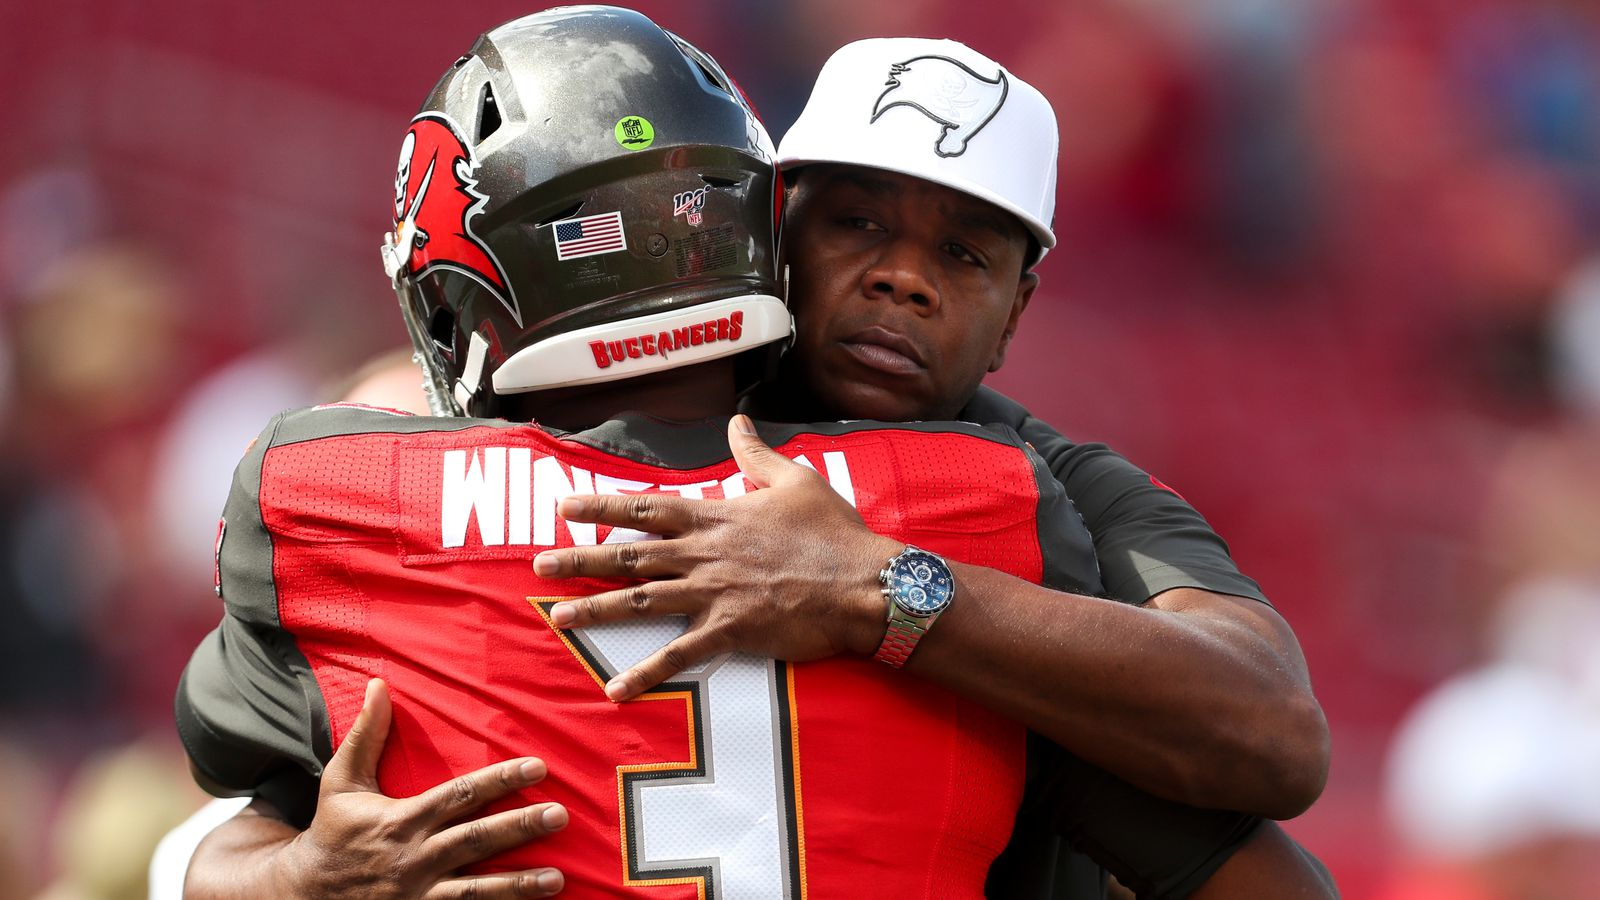 Nfl Picks Week 4 Can The Tampa Bay Buccaneers Pull Off The Upset Of The Week